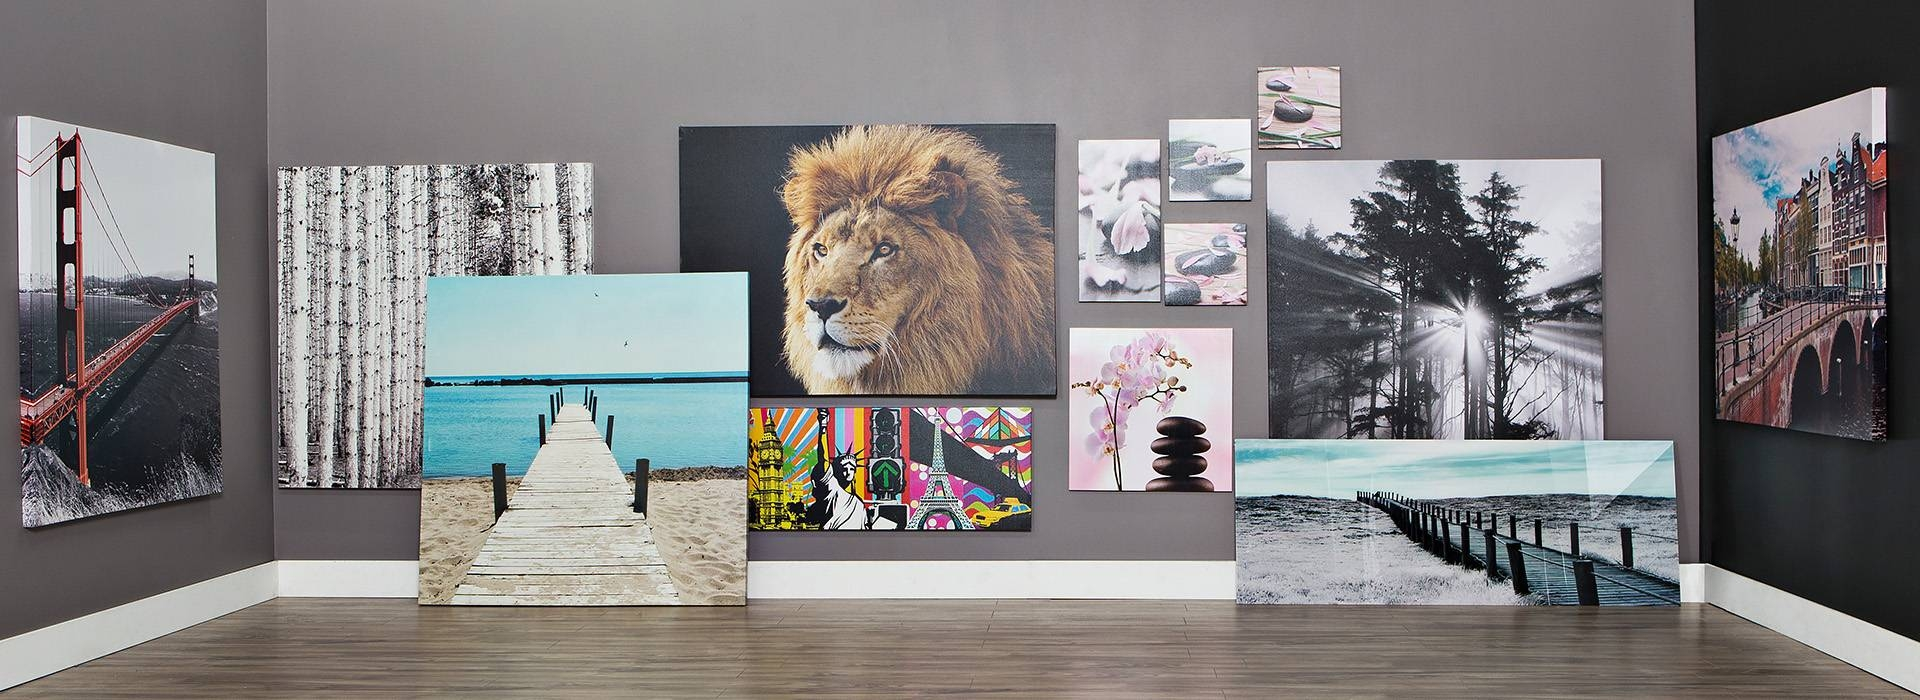 Wall Art | Home & Decor | Jysk Canada In Most Current Vancouver 3D Wall Art (View 17 of 20)